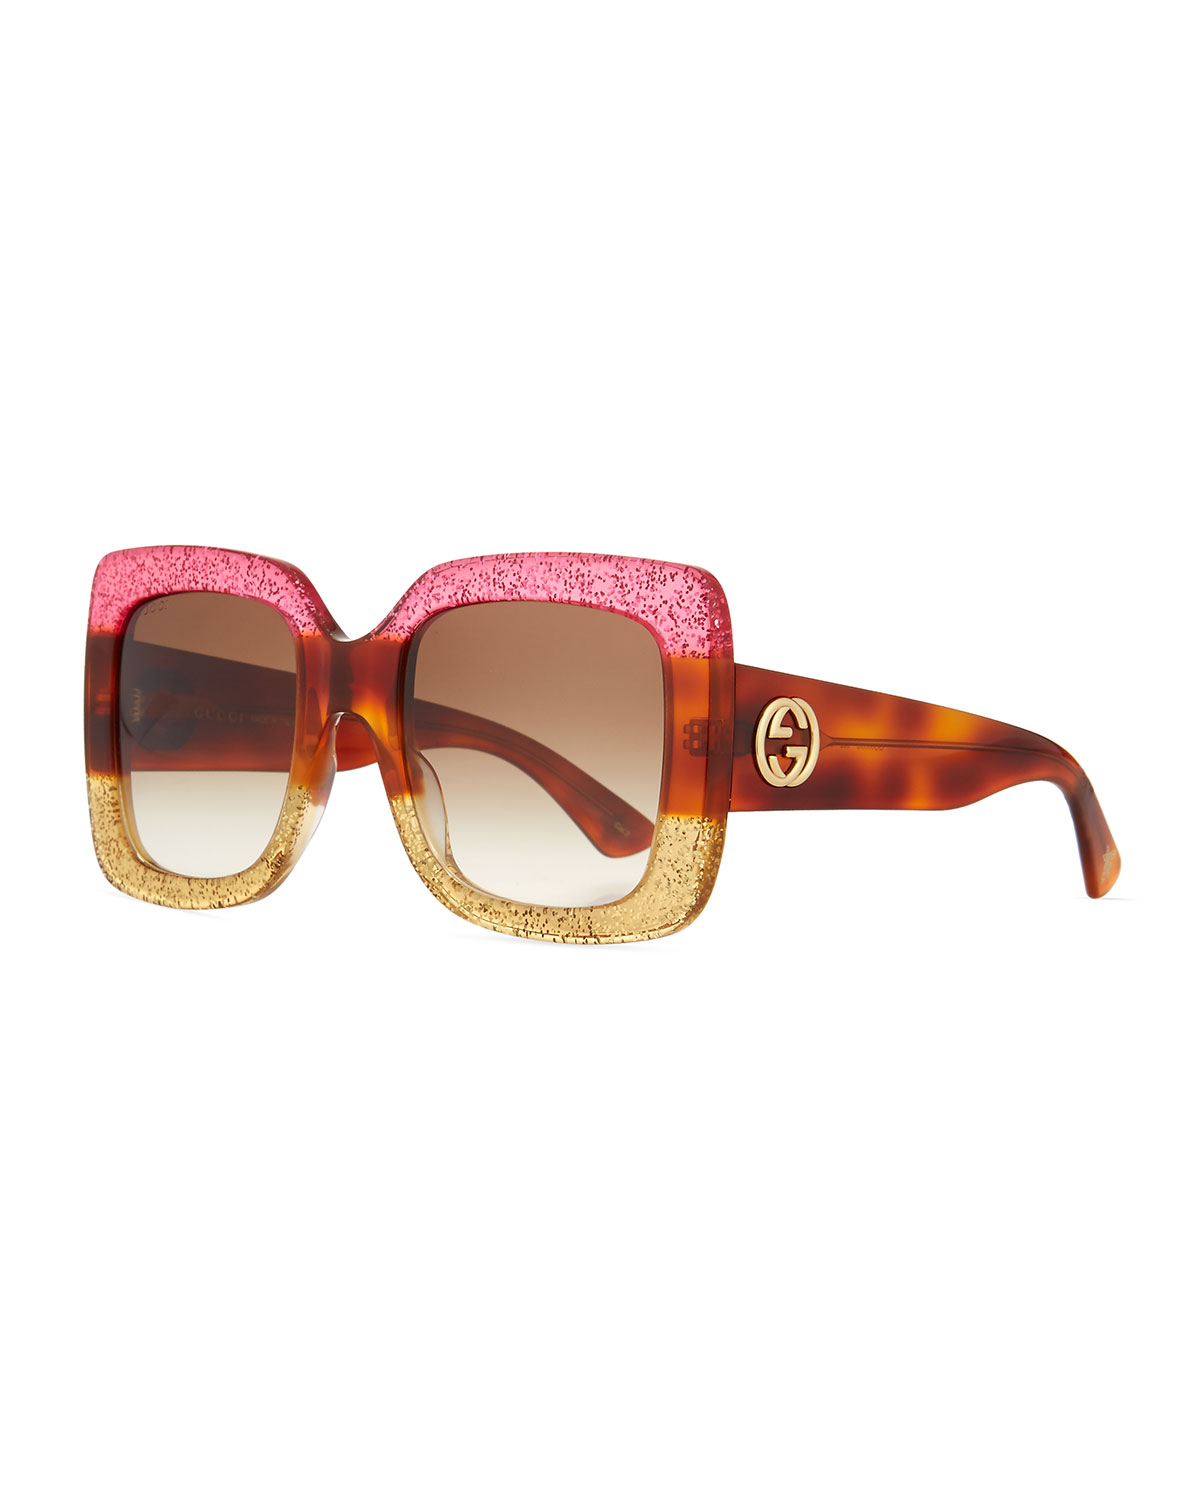 93bd4ec9c0e Gucci Glittered Gradient Oversized Square Sunglasses